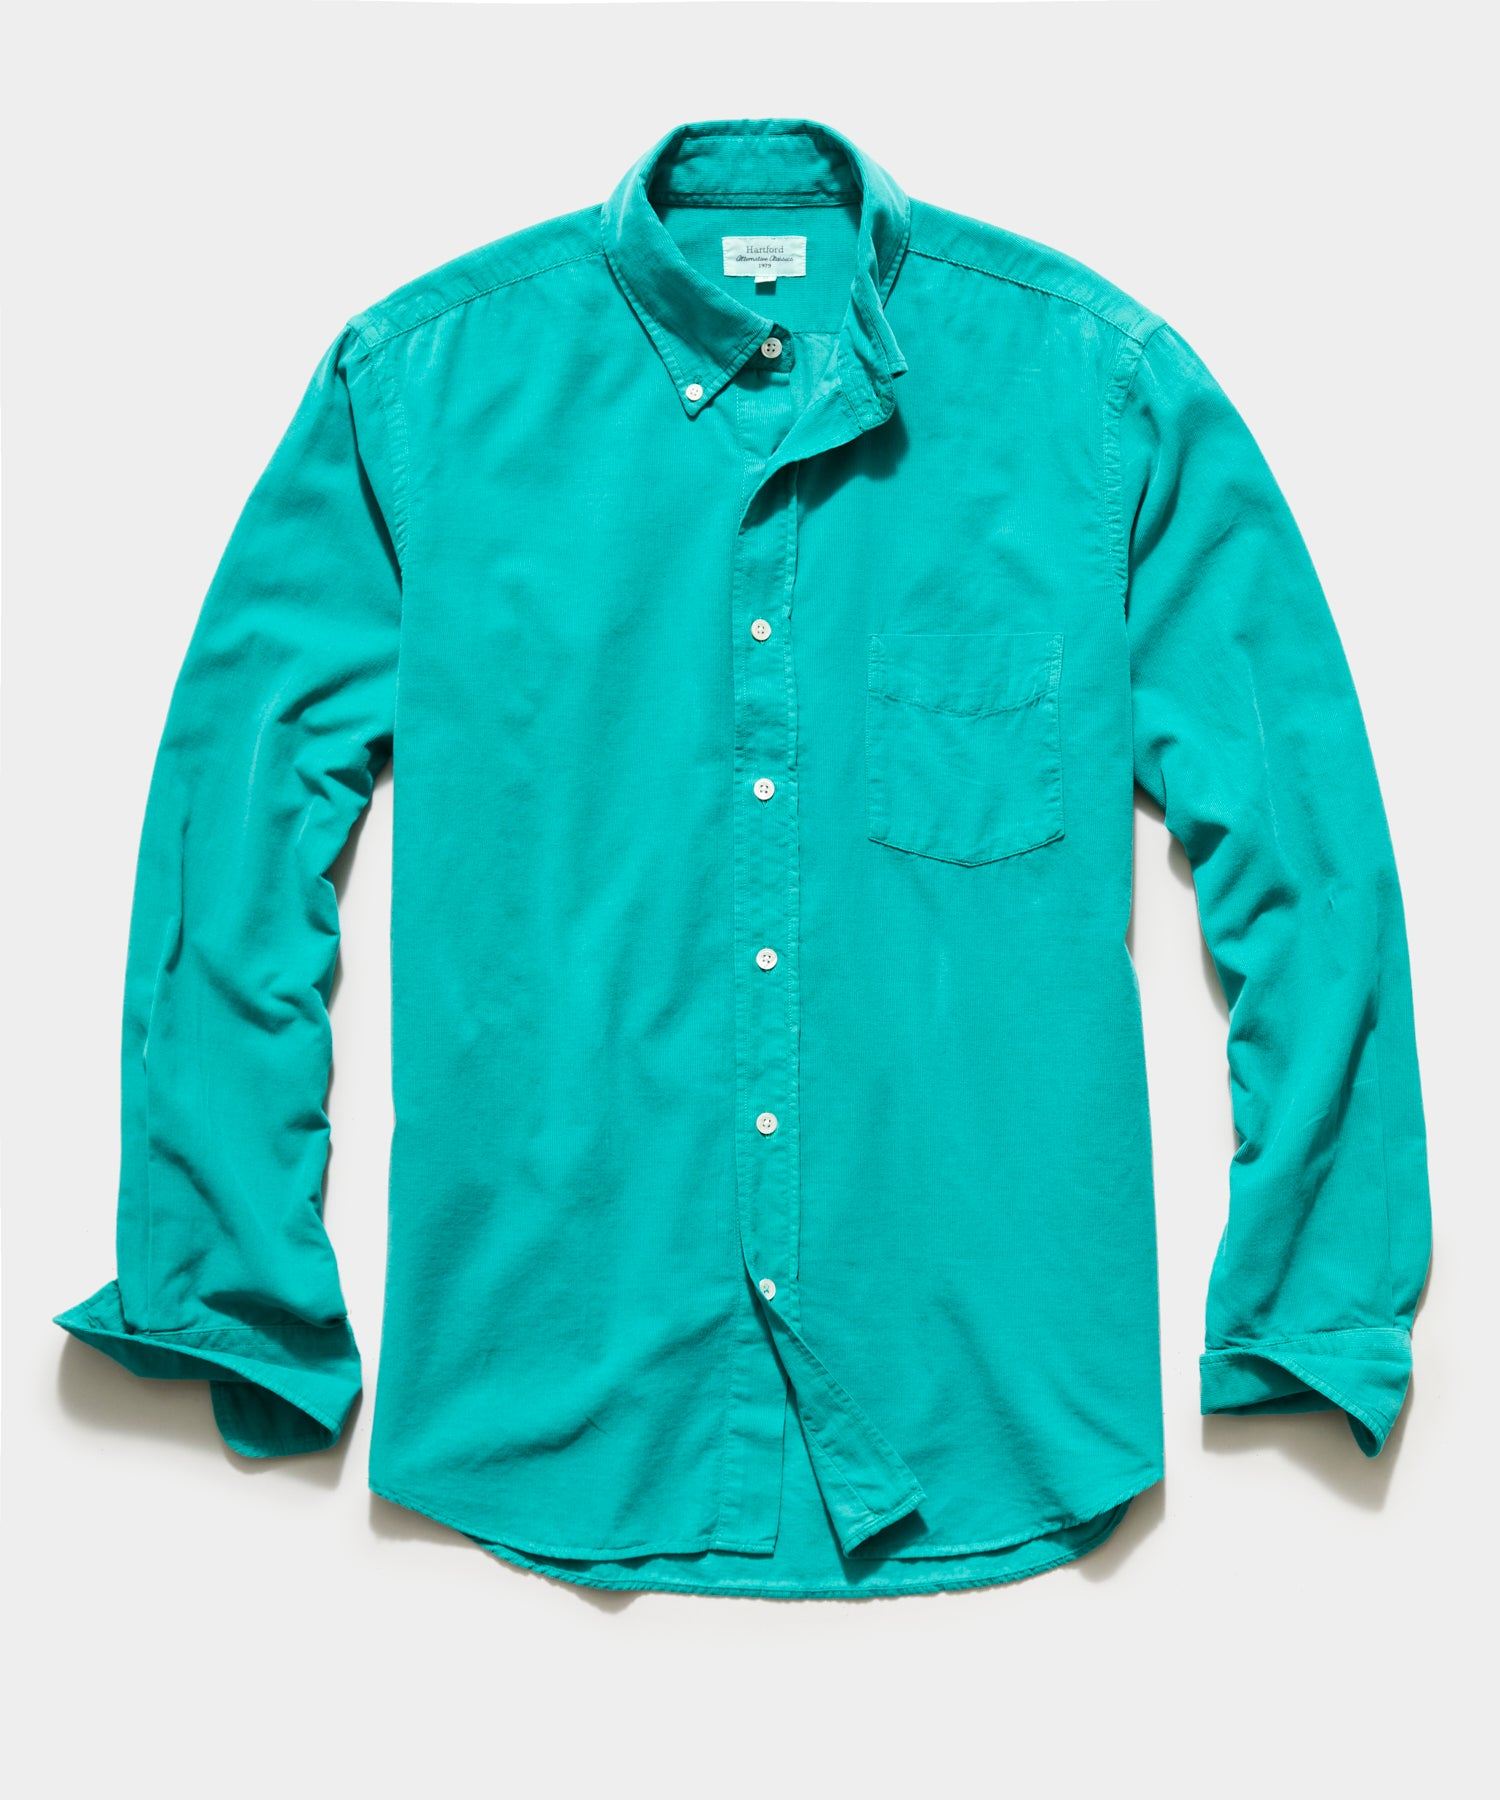 Hartford Garment Dyed Corduroy Shirt in Mint